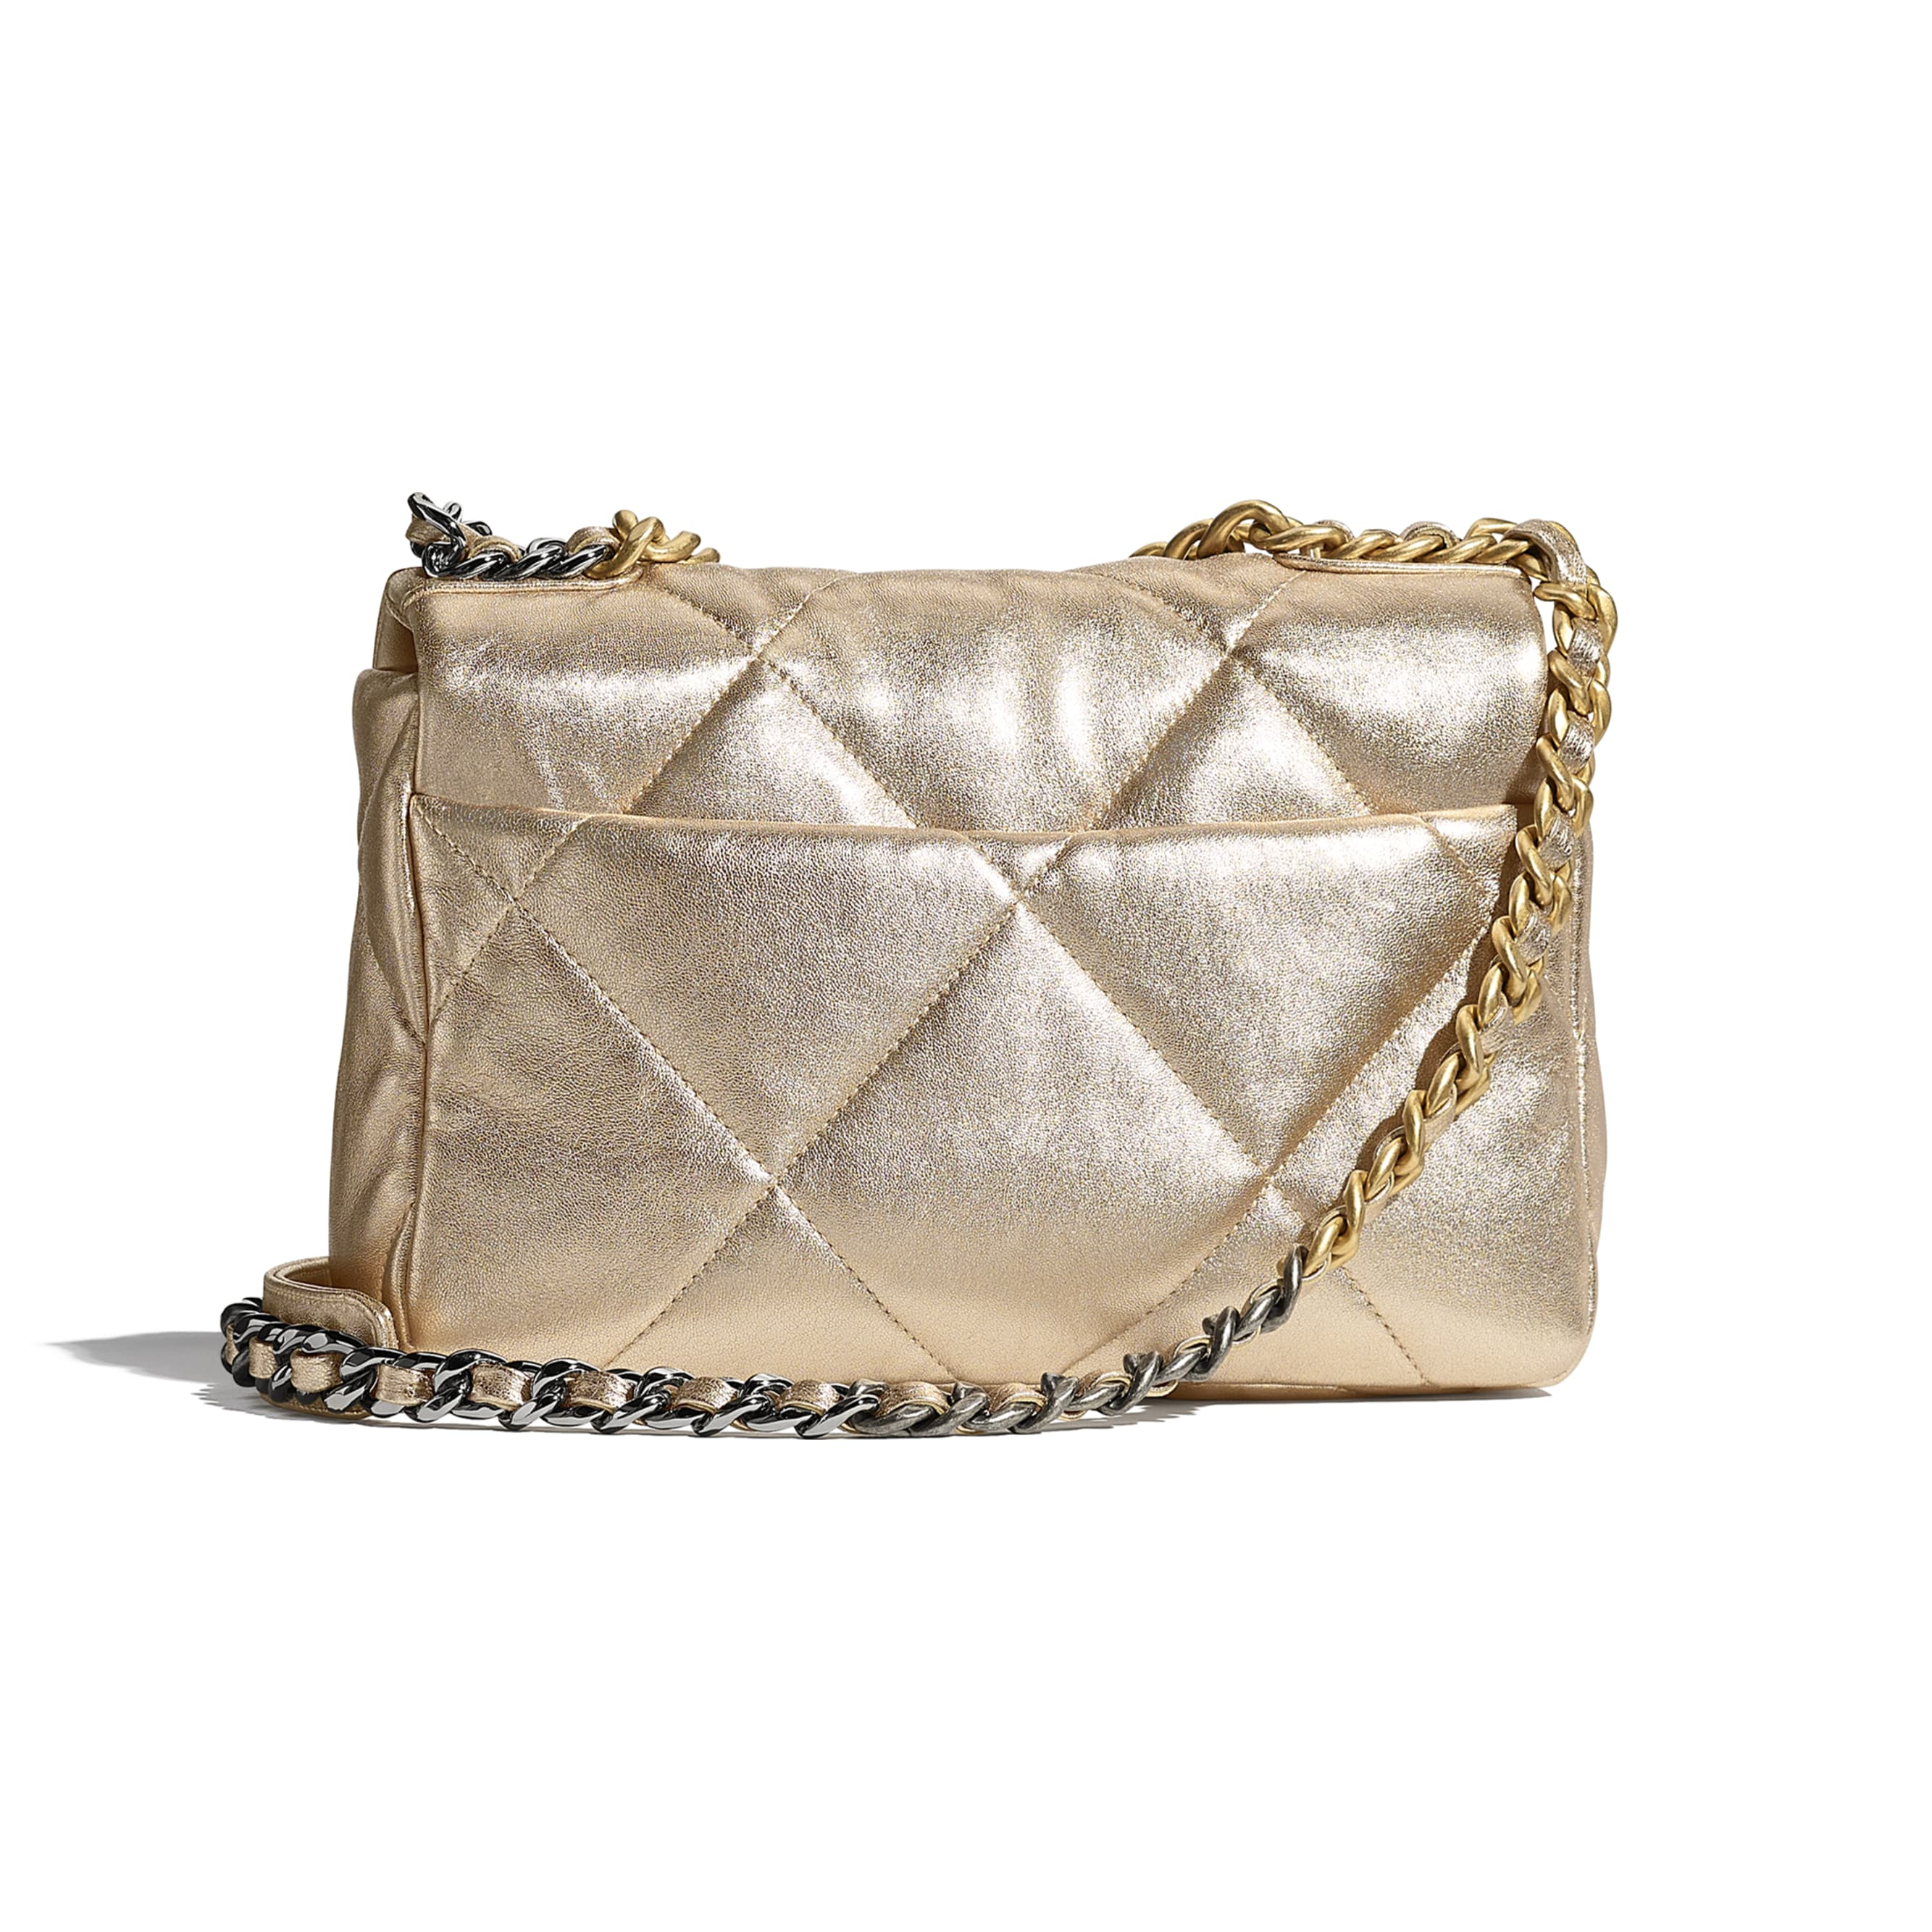 CHANEL 19 Handbag - Gold - Metallic Lambskin, Gold-Tone, Silver-Tone & Ruthenium-Finish Metal - CHANEL - Alternative view - see standard sized version